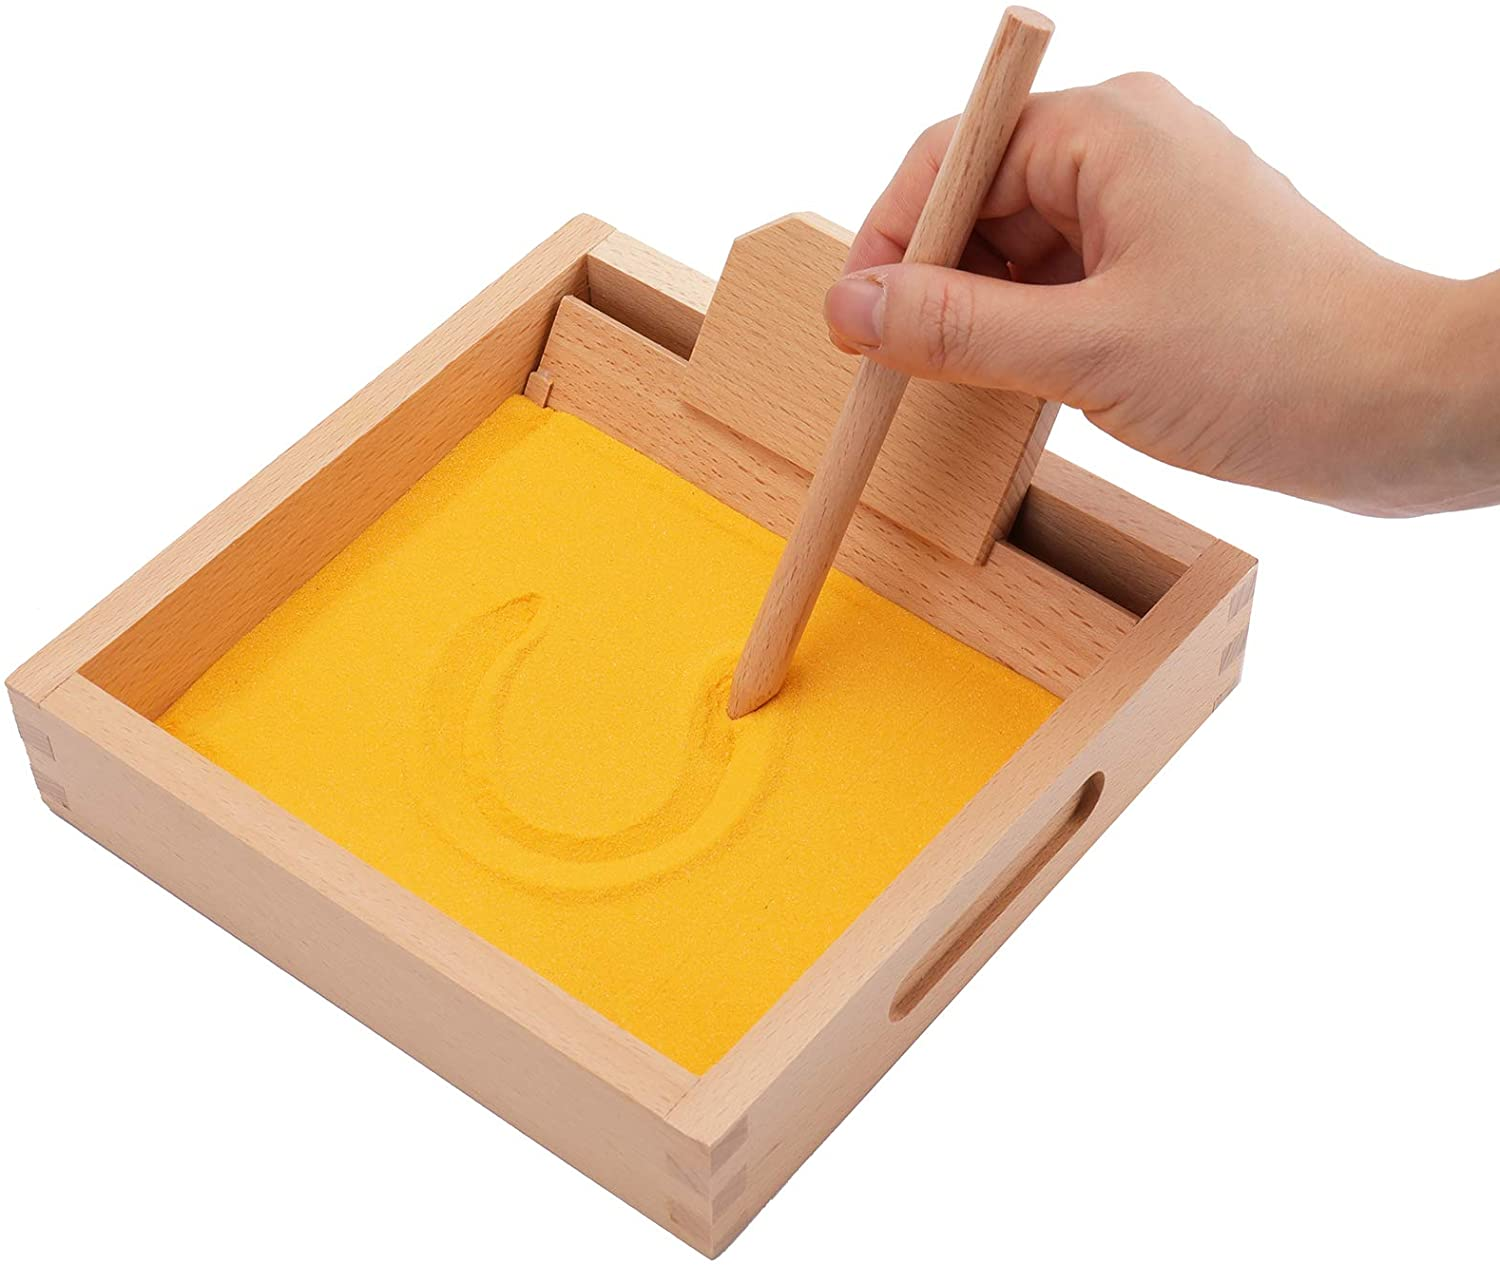 Amazon.com: Suwimut Montessori Letter Formation Sand Tray with Wooden Pen Educational Toys, Alphabet and Number Learning Writing Exercises Tool: Toys & Games